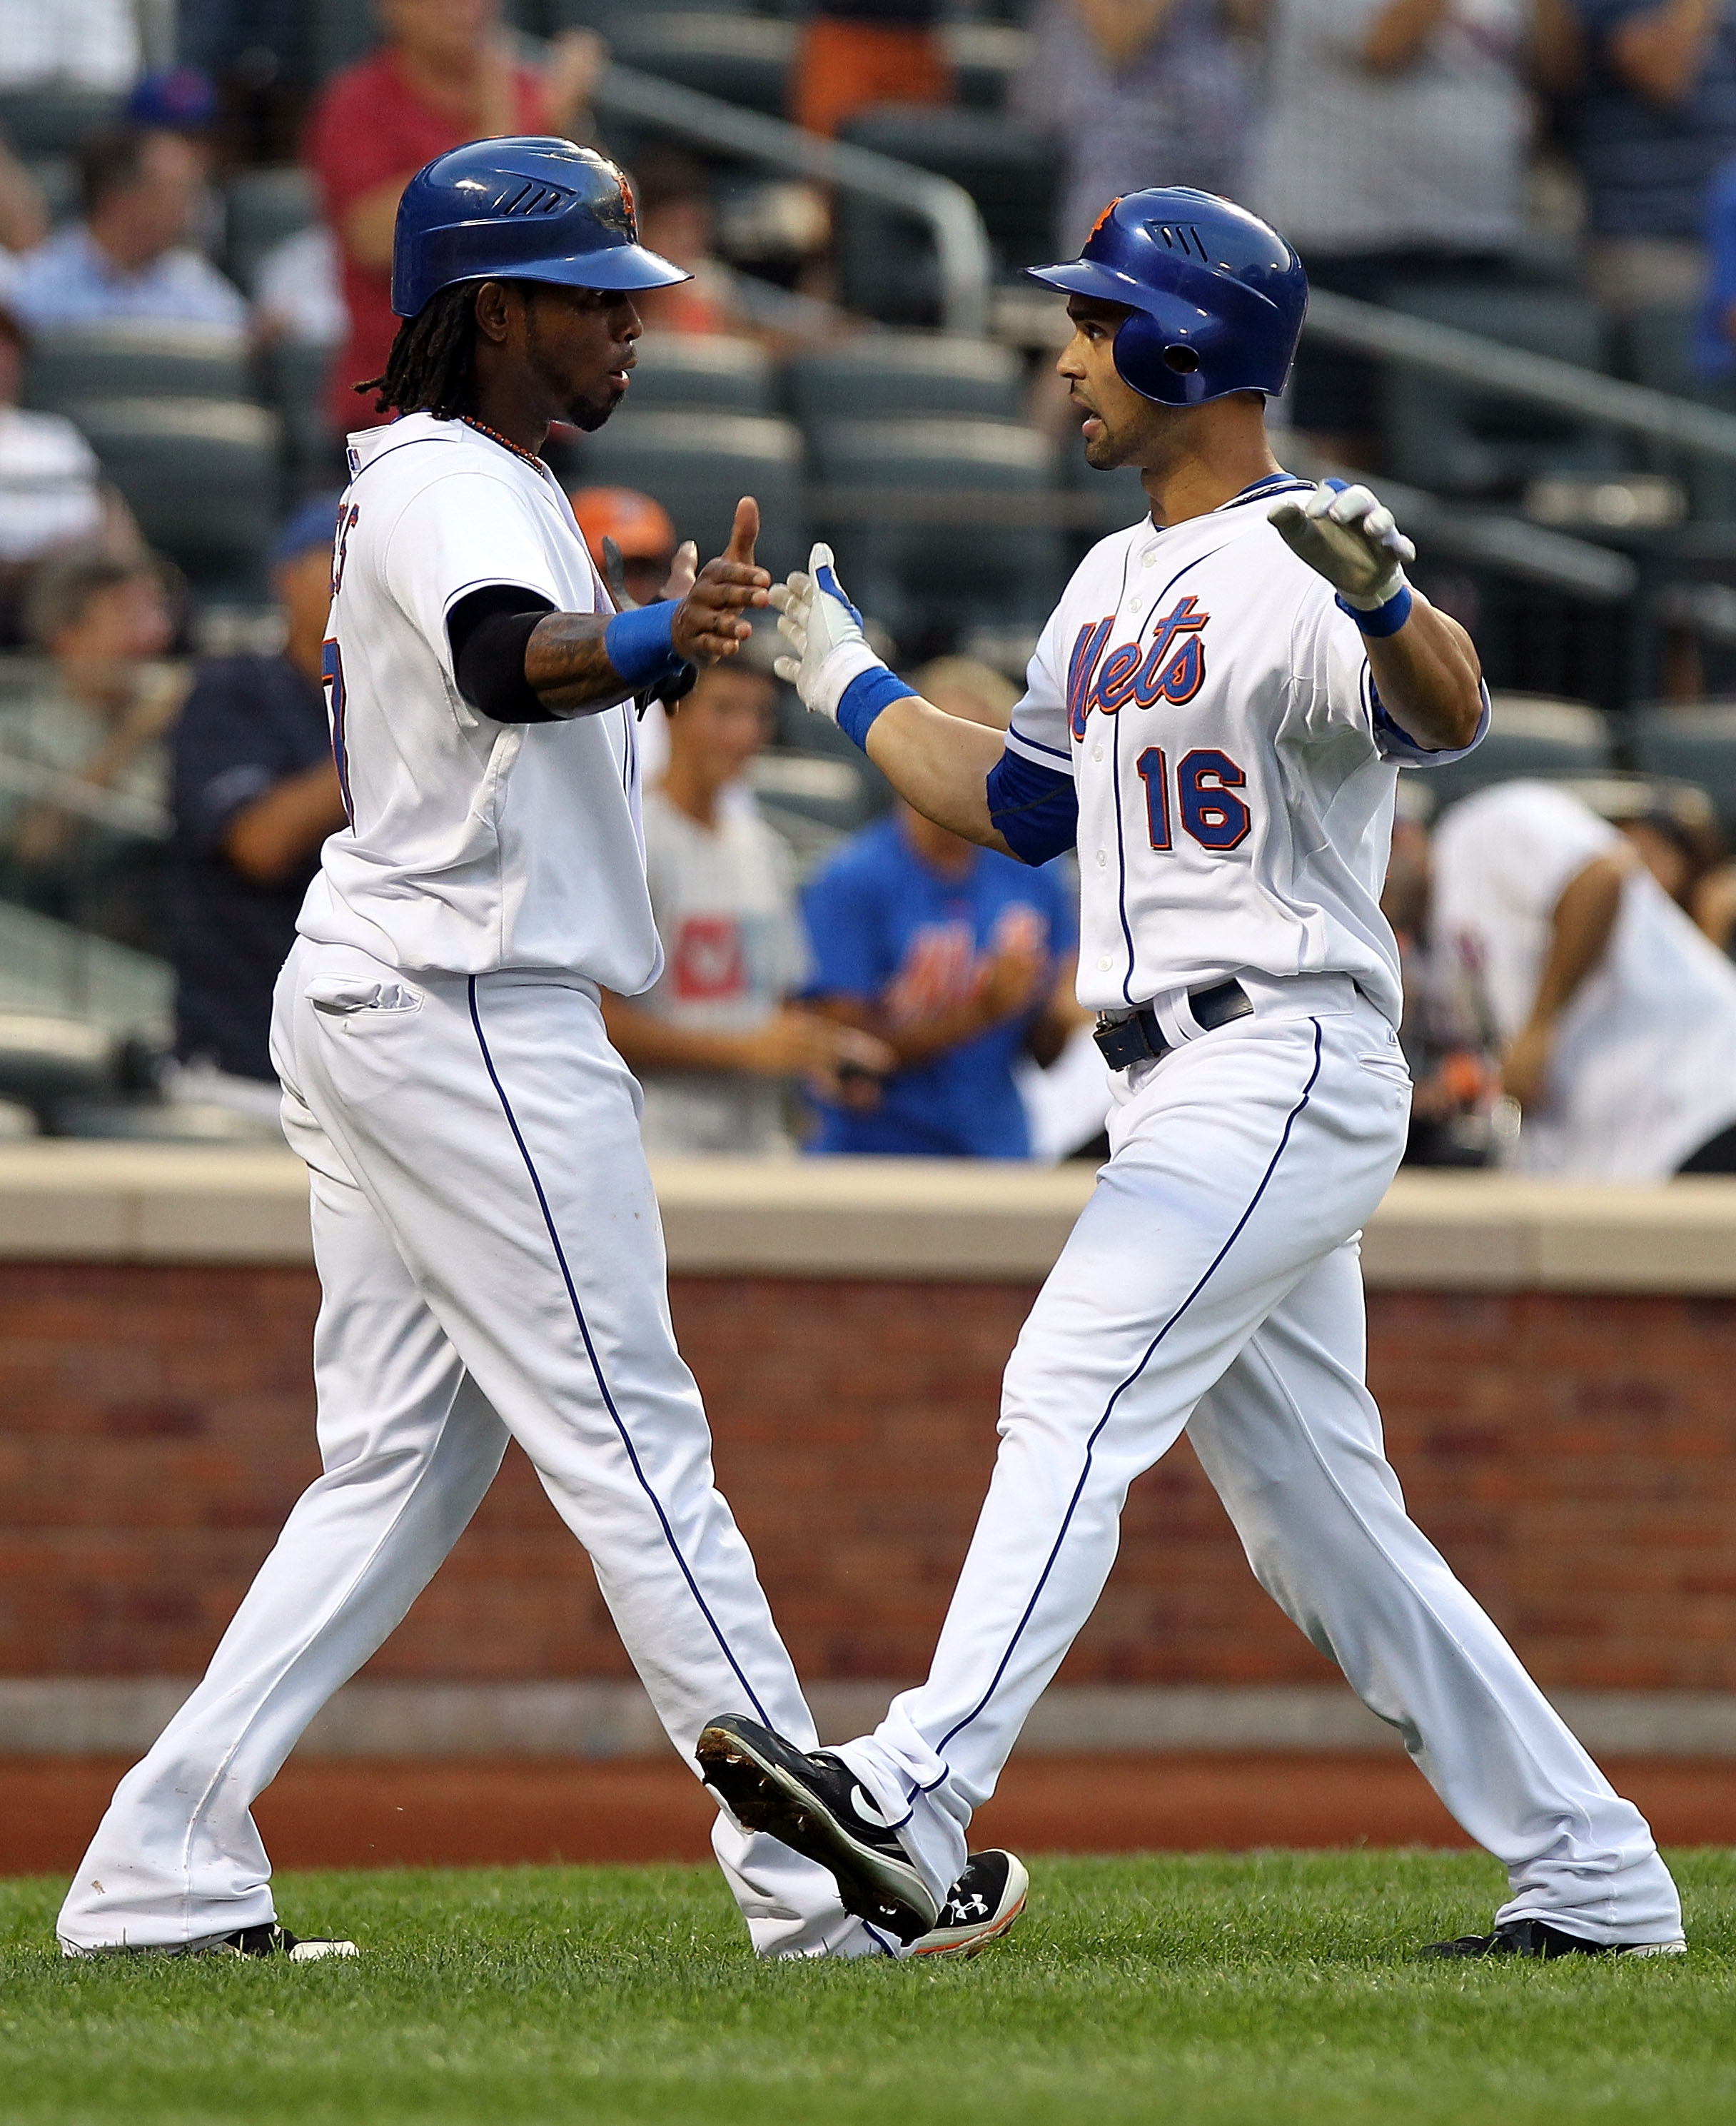 NEW YORK - AUGUST 11:  Angel Pagan #16 of the New York Mets is congratulated by scoring teammate Jose Reyes after a two run home run in the first inning against the Colorado Rockies at Citi Field on August 11, 2010 in the Flushing neighborhood of the Quee